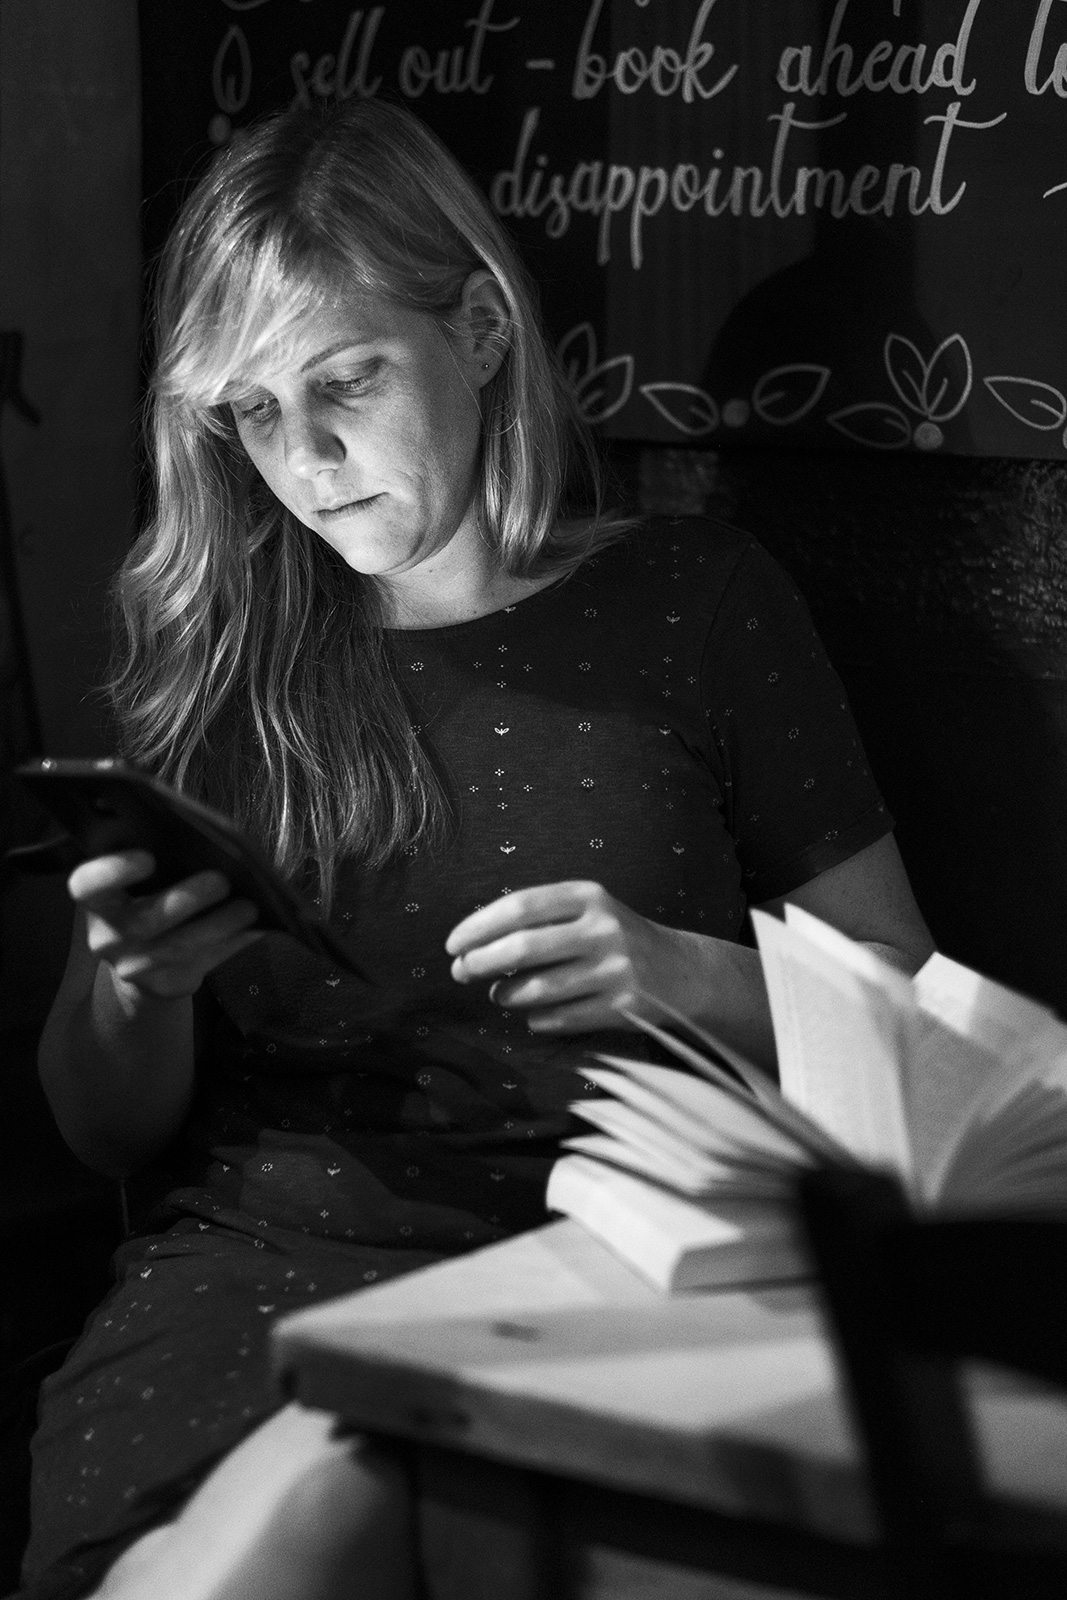 Portrait of young woman lit by glow from her phone screen with open book in foreground at the Shakespeares Head pub in Brighton UK, black and white documentary photograph ©P. Maton 2019 eyeteeth.net